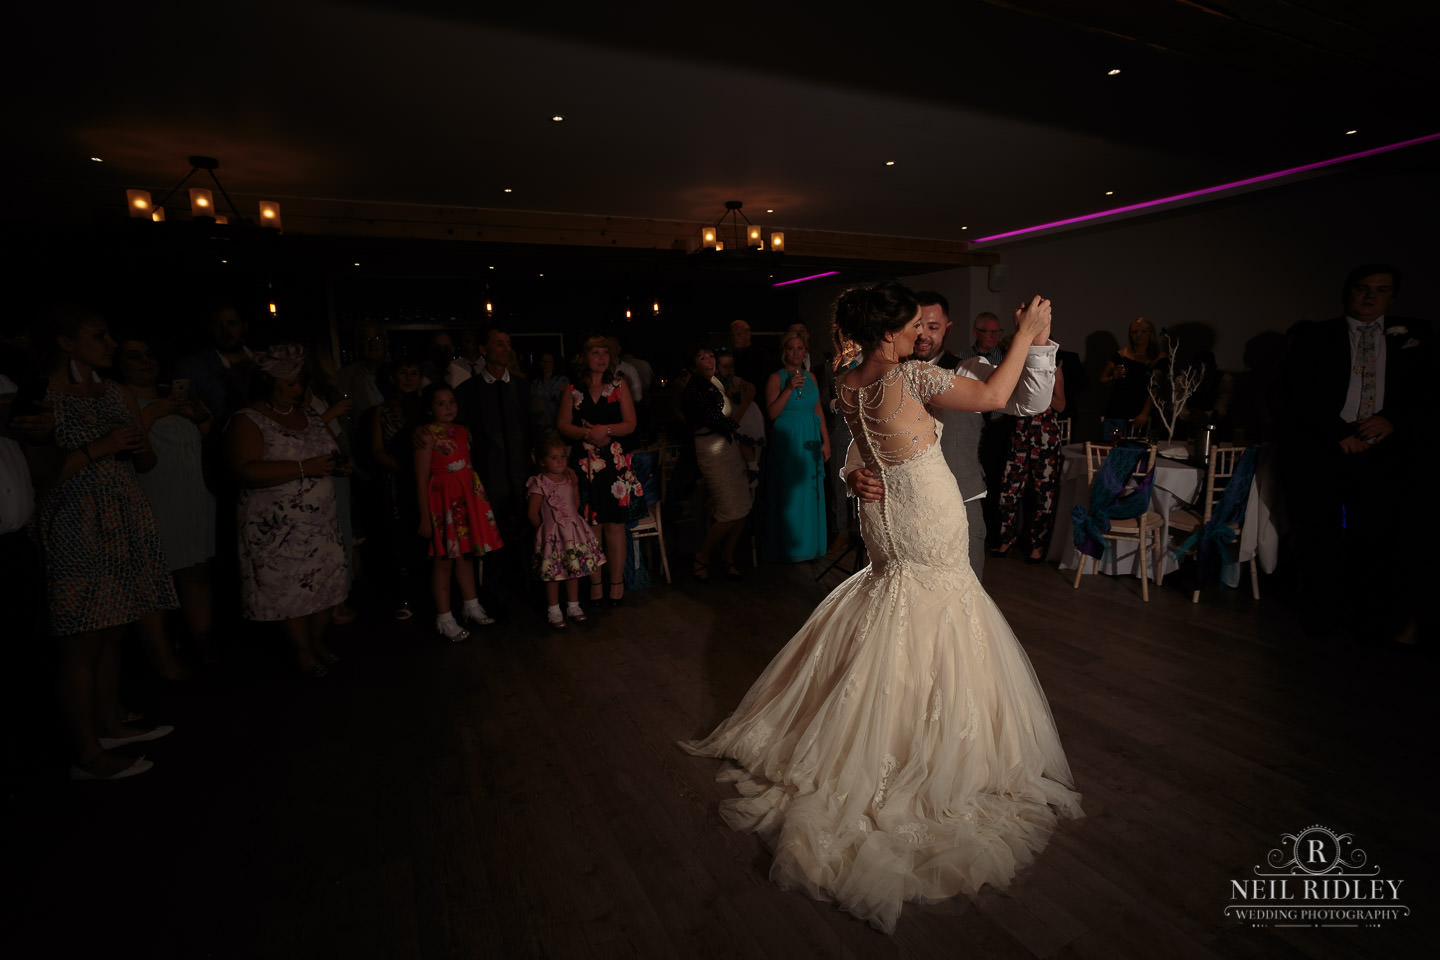 Bride and Groom enjoy their first dance on the dance floor at The Mill at Conder Green